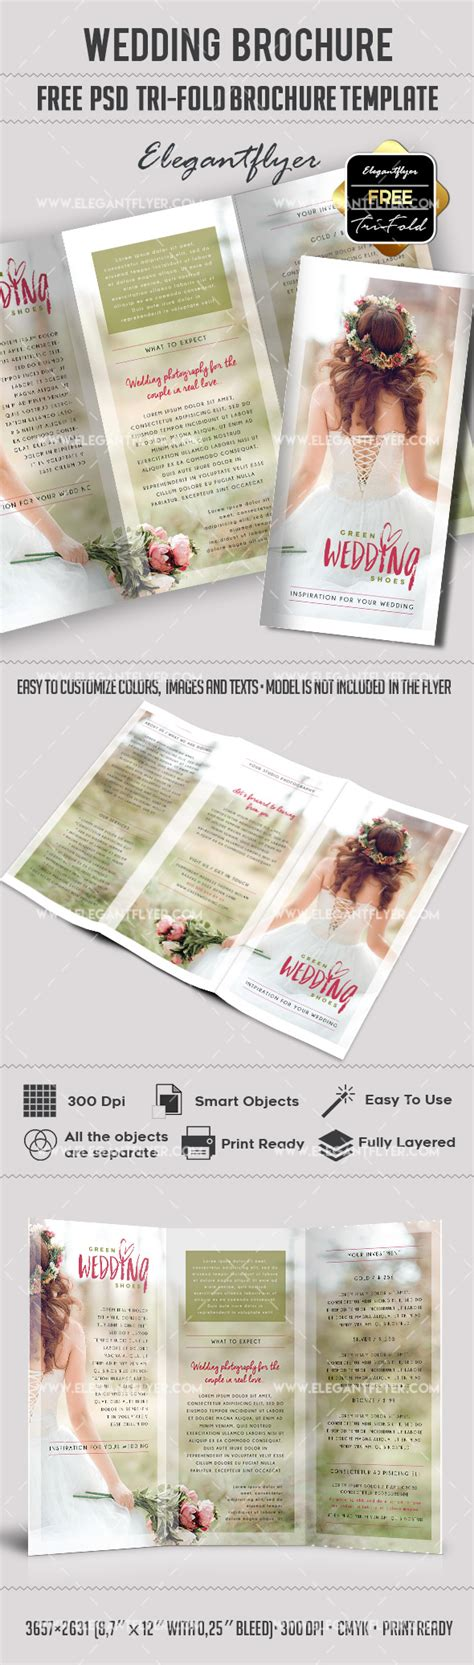 wedding brochure template wedding free tri fold psd brochure template by